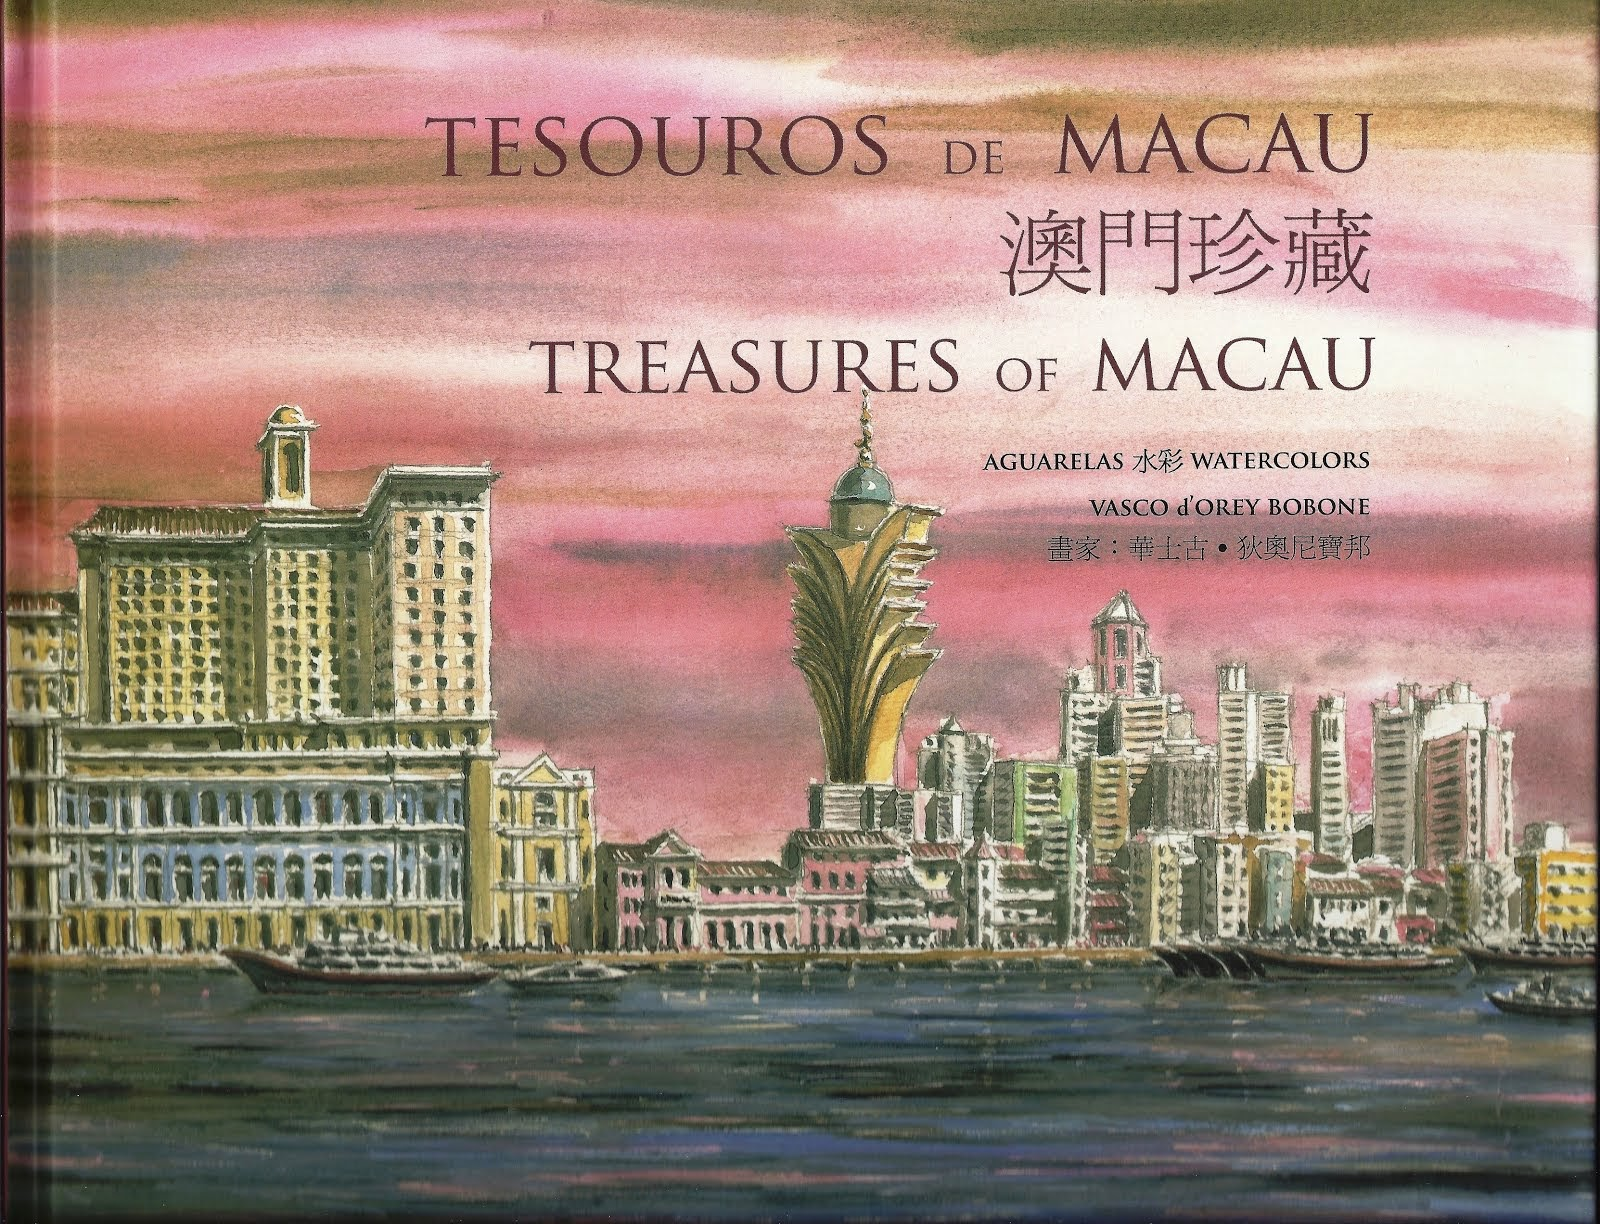 Tesouros de Macau. Treasures of Macau